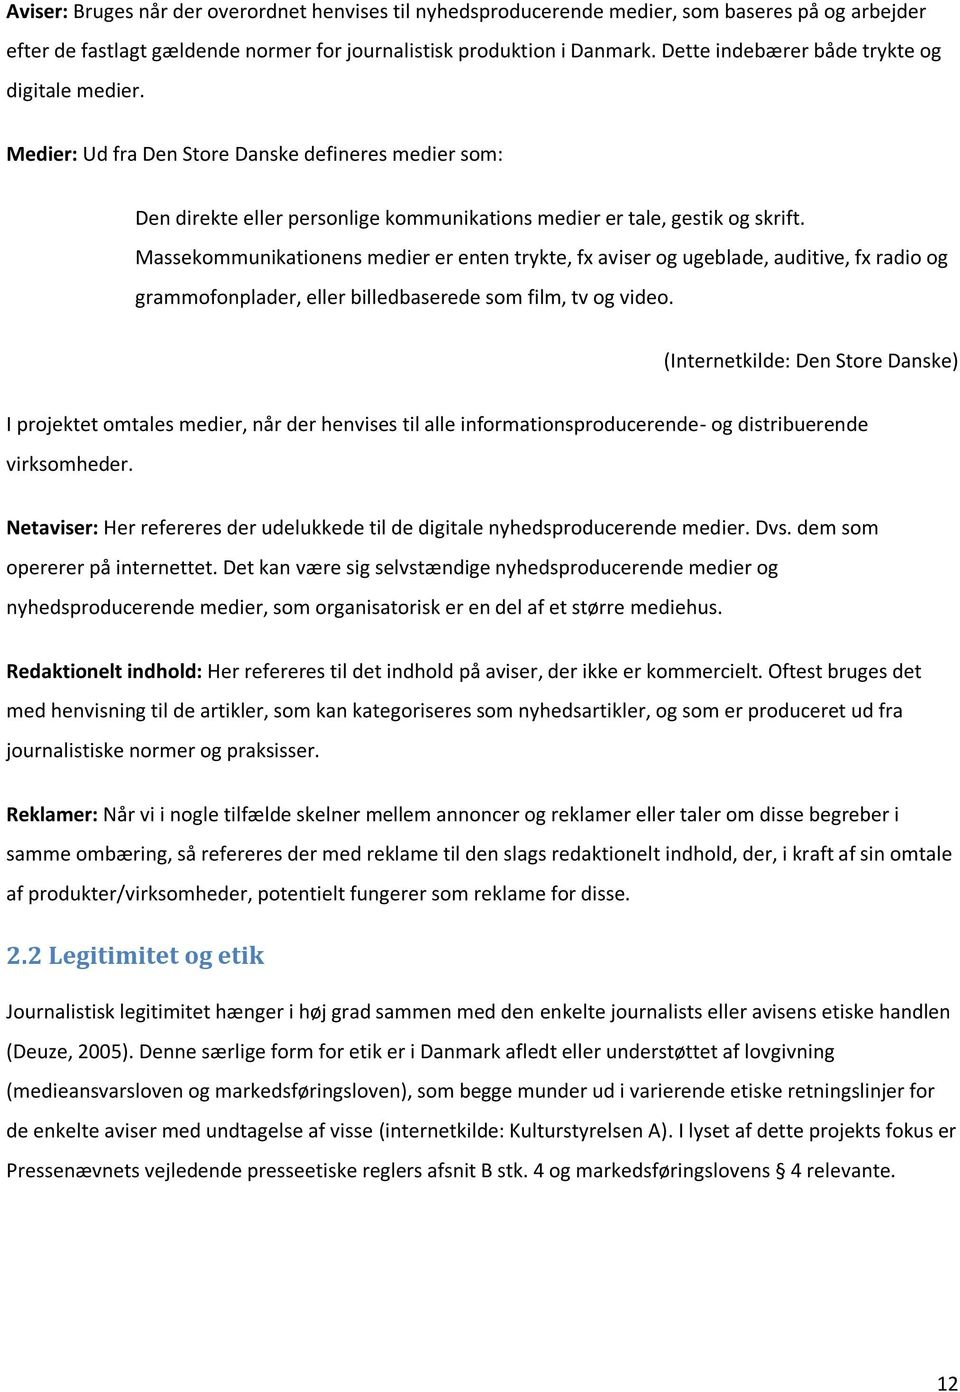 Massekommunikationens medier er enten trykte, fx aviser og ugeblade, auditive, fx radio og grammofonplader, eller billedbaserede som film, tv og video.